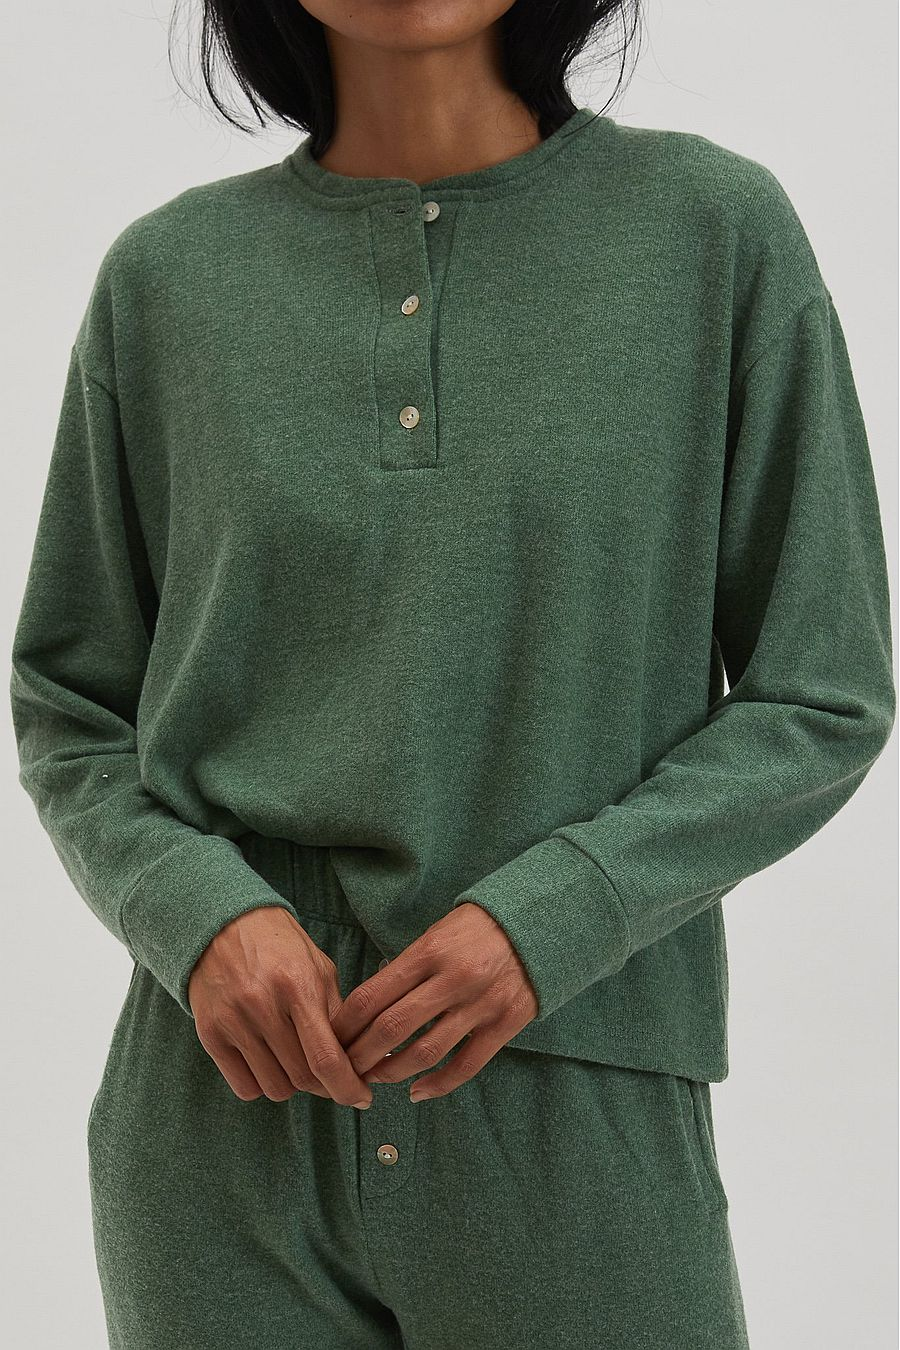 DONNI. Sweater Henley - Kelly